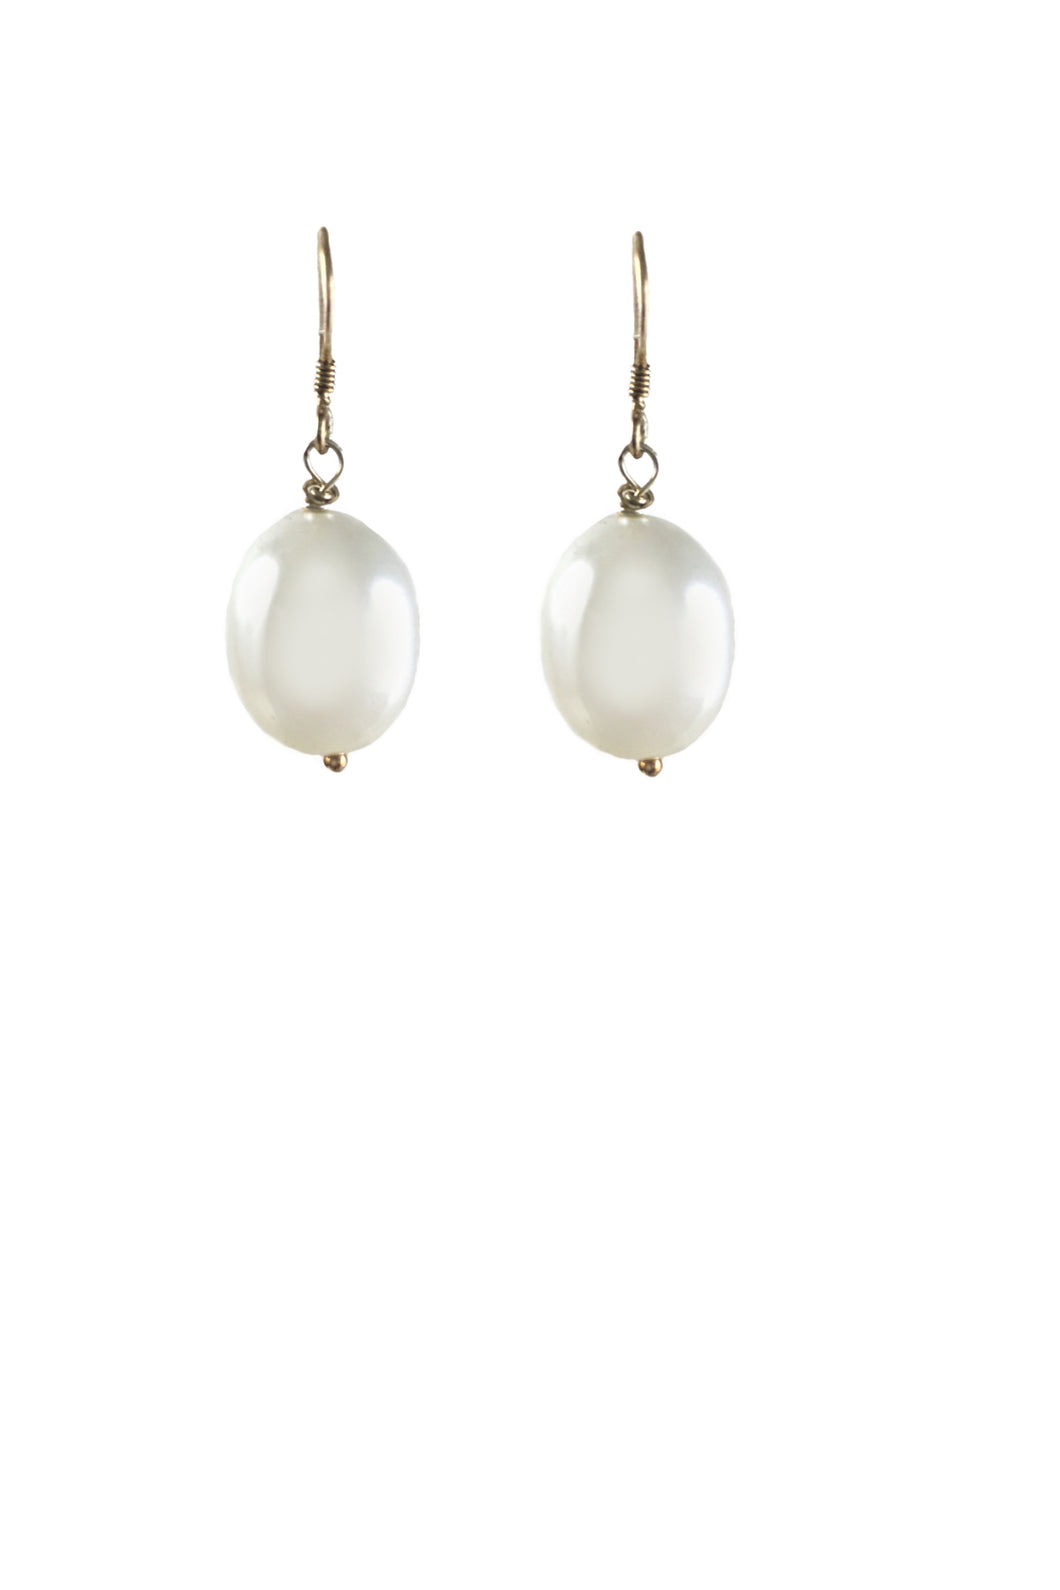 Agatha Pearls earrings